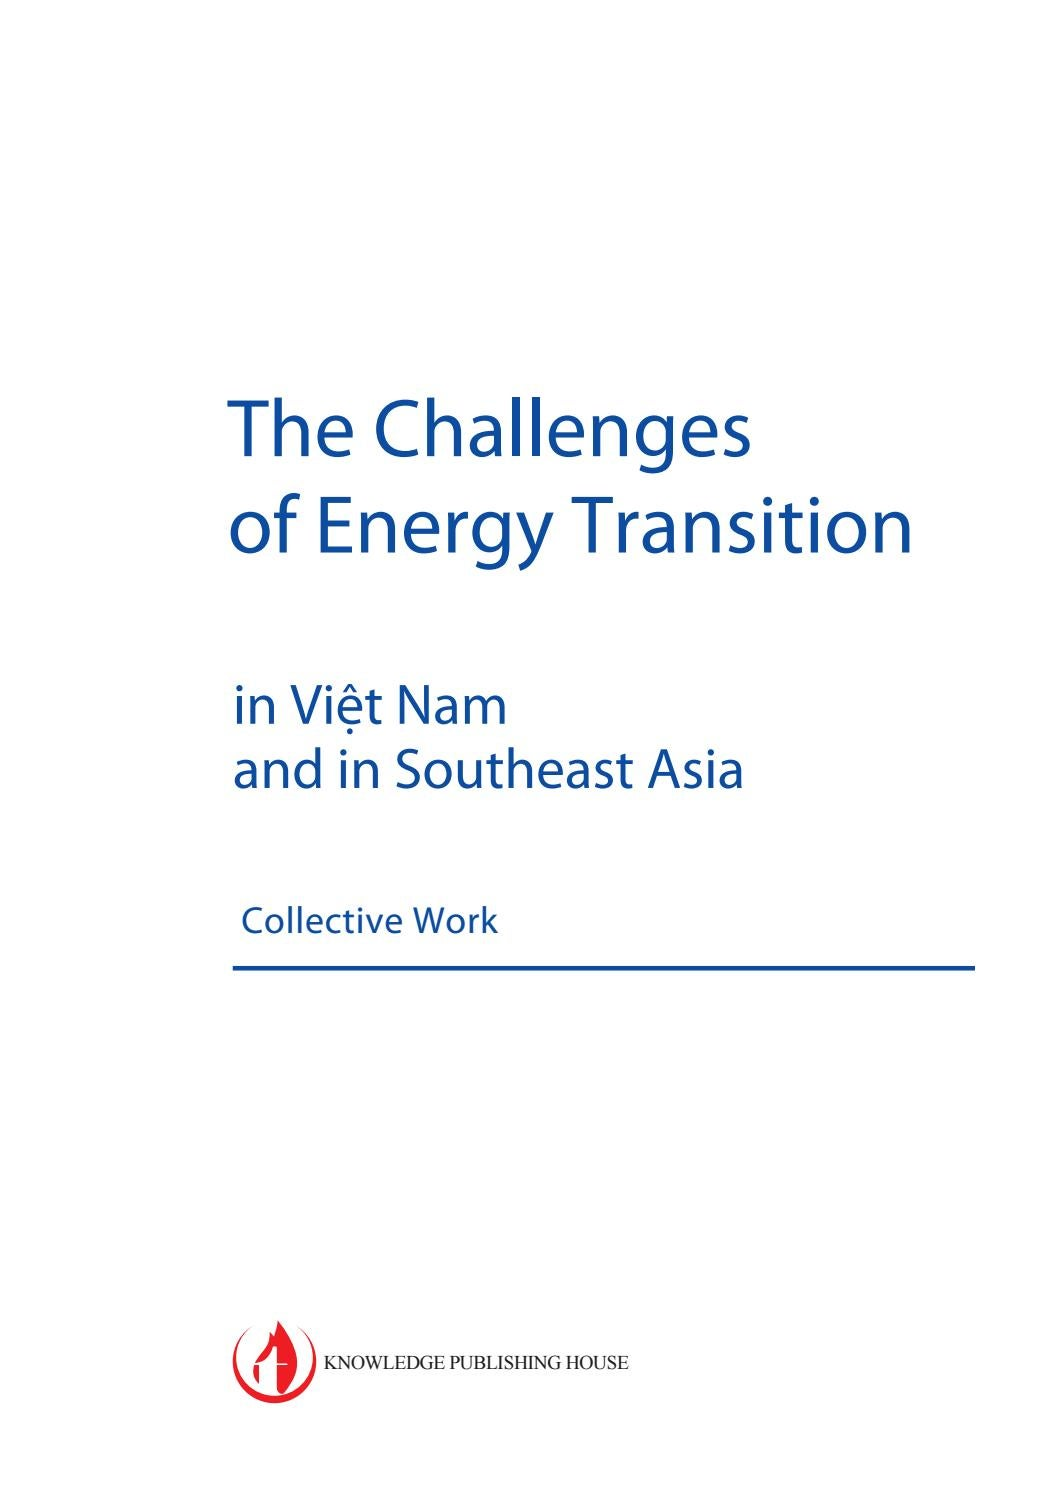 The Challenges of Energy Transition - in Vi?t Nam and in Southeast Asia by  Agence Française de Développement - issuu